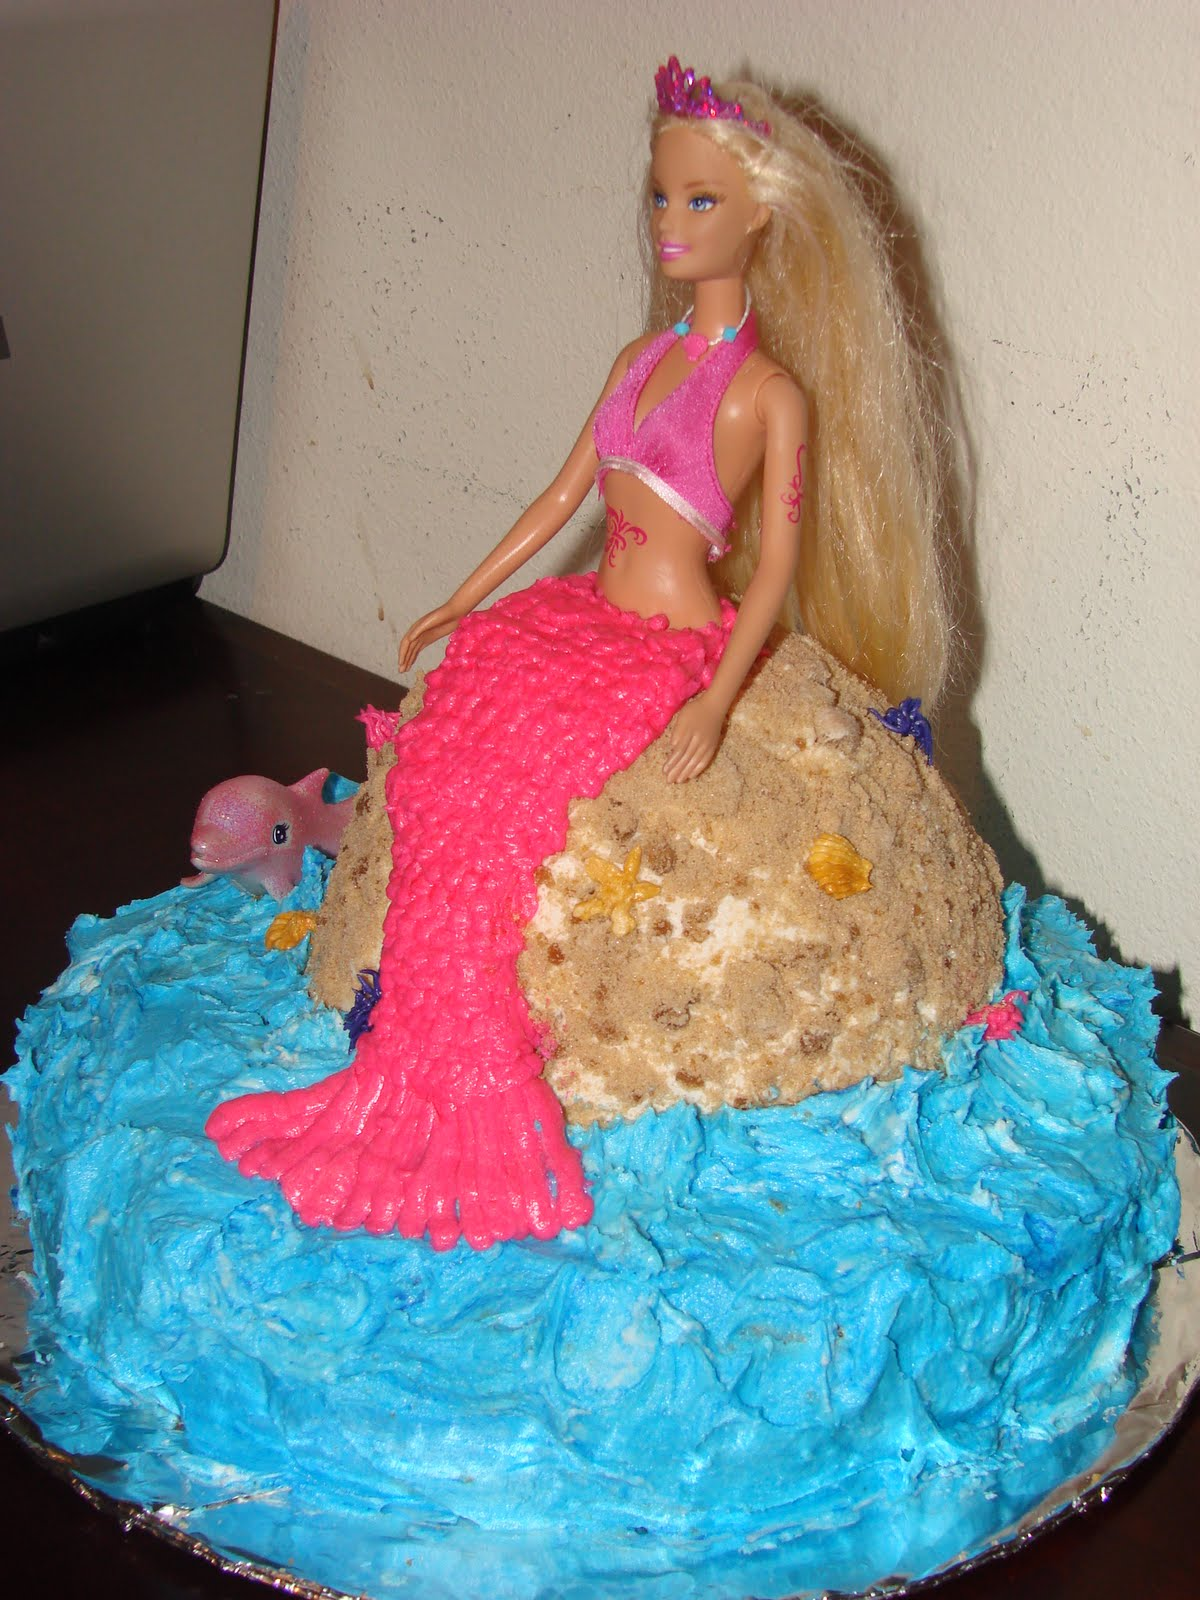 Barbie Mermaid Cake Images : Aggieland Mommy Bakes: Lauren s 7th Birthday Mermaid ...